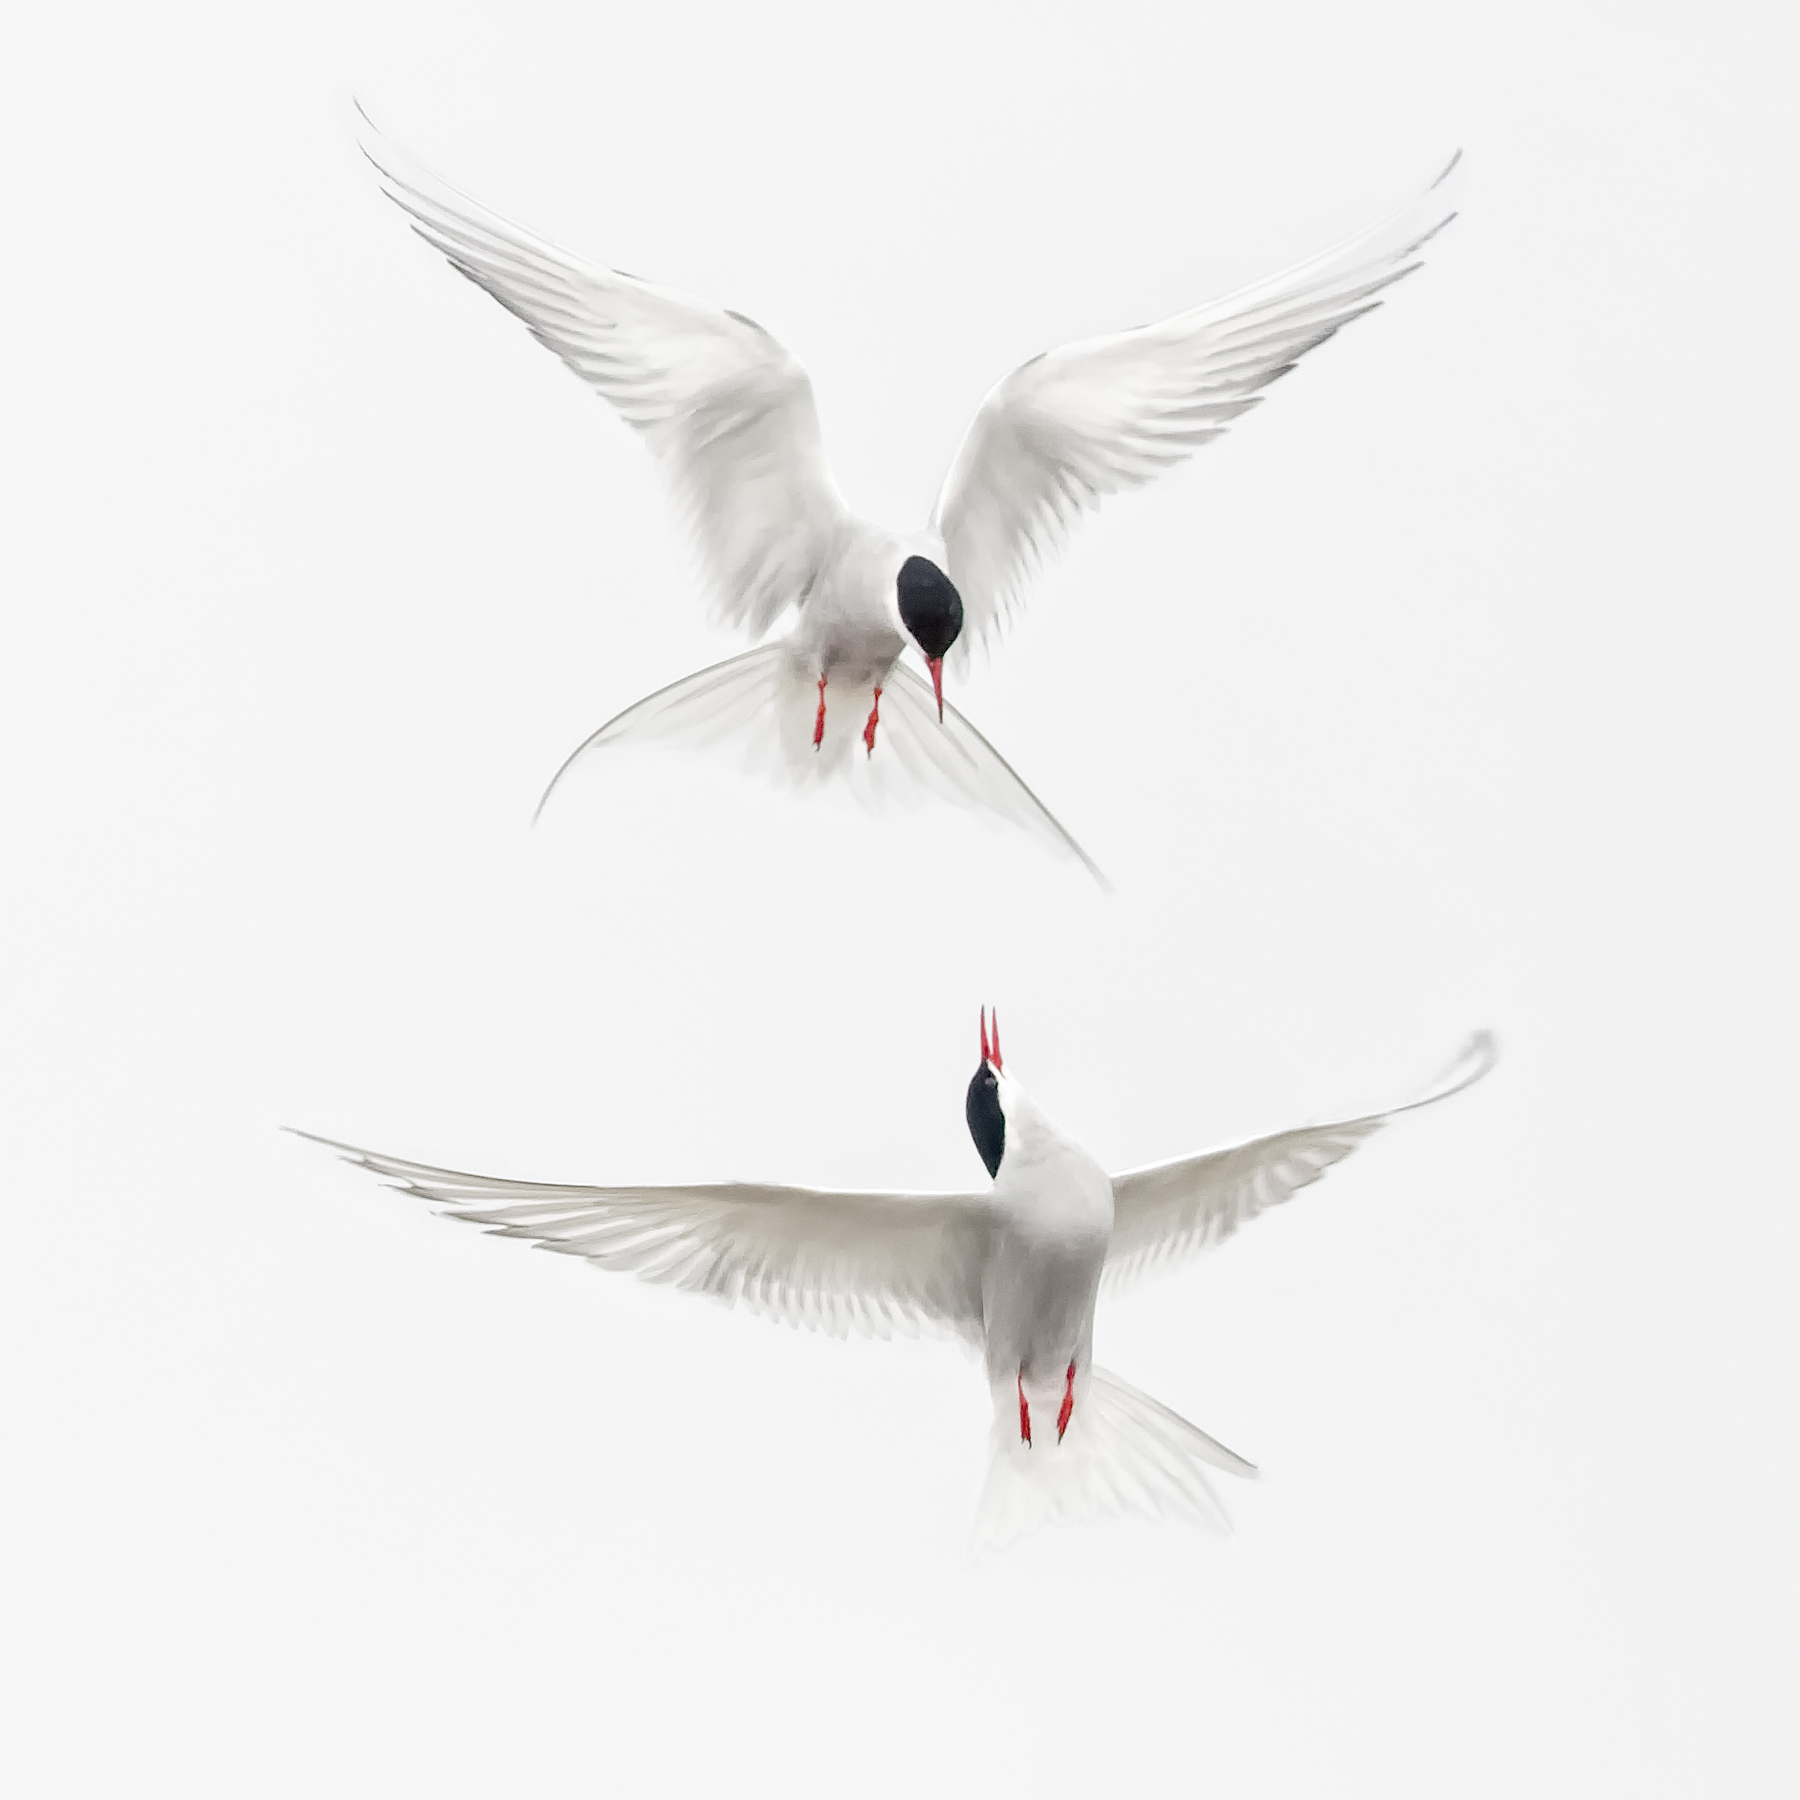 Brian_Jones_Arctic Terns Courtship Flight_Arctic Terns Courtship Flight 2_2.jpg